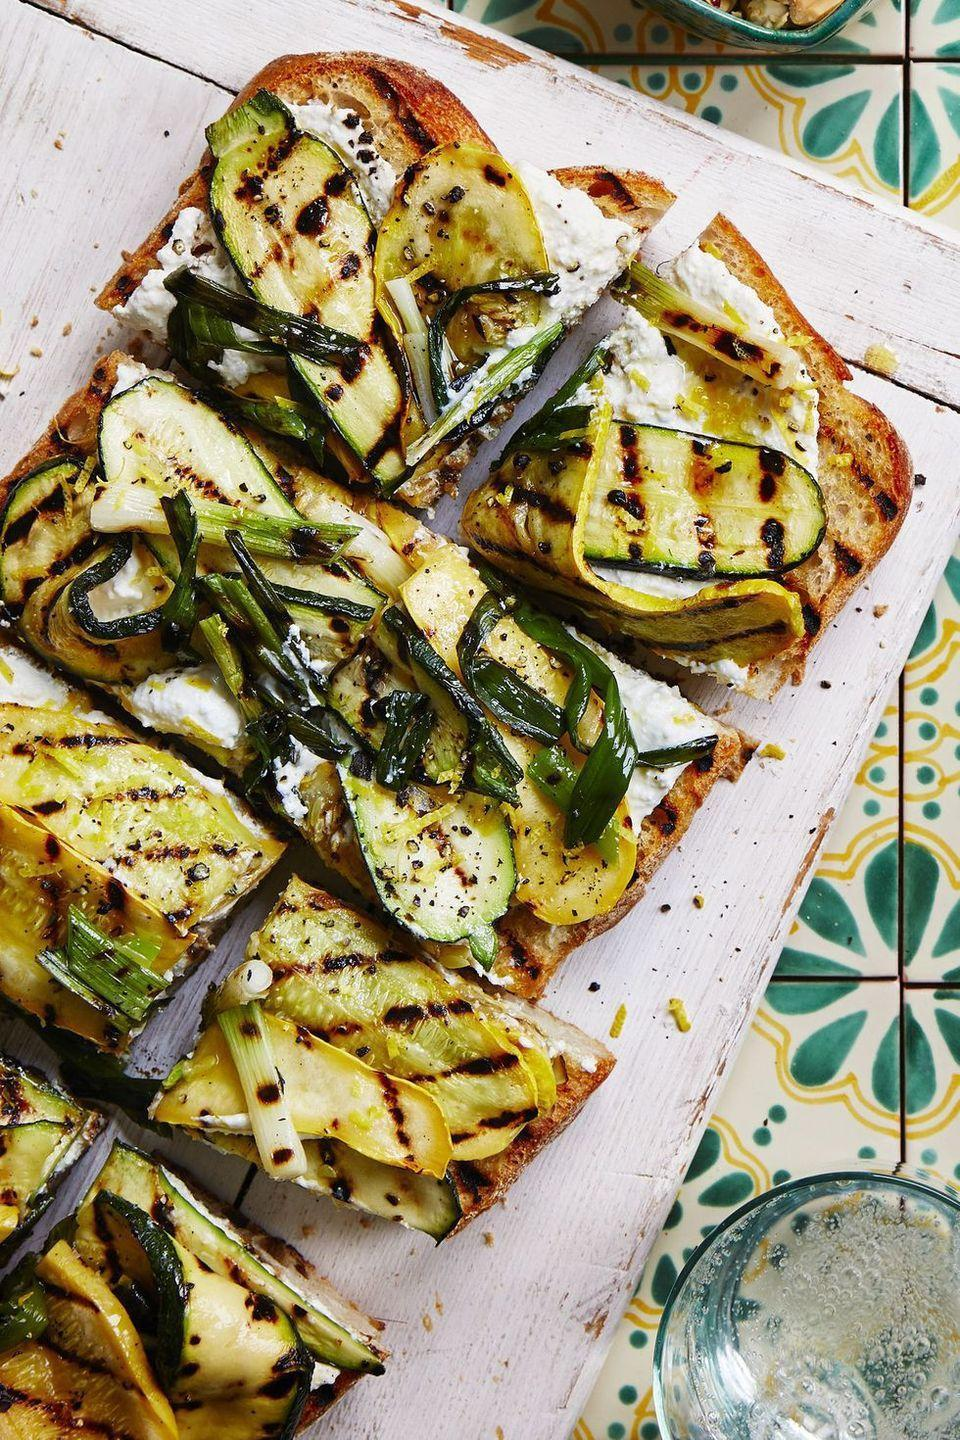 "<p>If you're craving hearty pizza, satisfy your tastebuds with this fresh veggie version.</p><p><a href=""https://www.womansday.com/food-recipes/food-drinks/a22469348/grilled-squash-garlic-bread-recipe/"" rel=""nofollow noopener"" target=""_blank"" data-ylk=""slk:Get the Grilled Squash Garlic Bread recipe."" class=""link rapid-noclick-resp""><em><strong>Get the Grilled Squash Garlic Bread recipe.</strong></em></a> </p>"